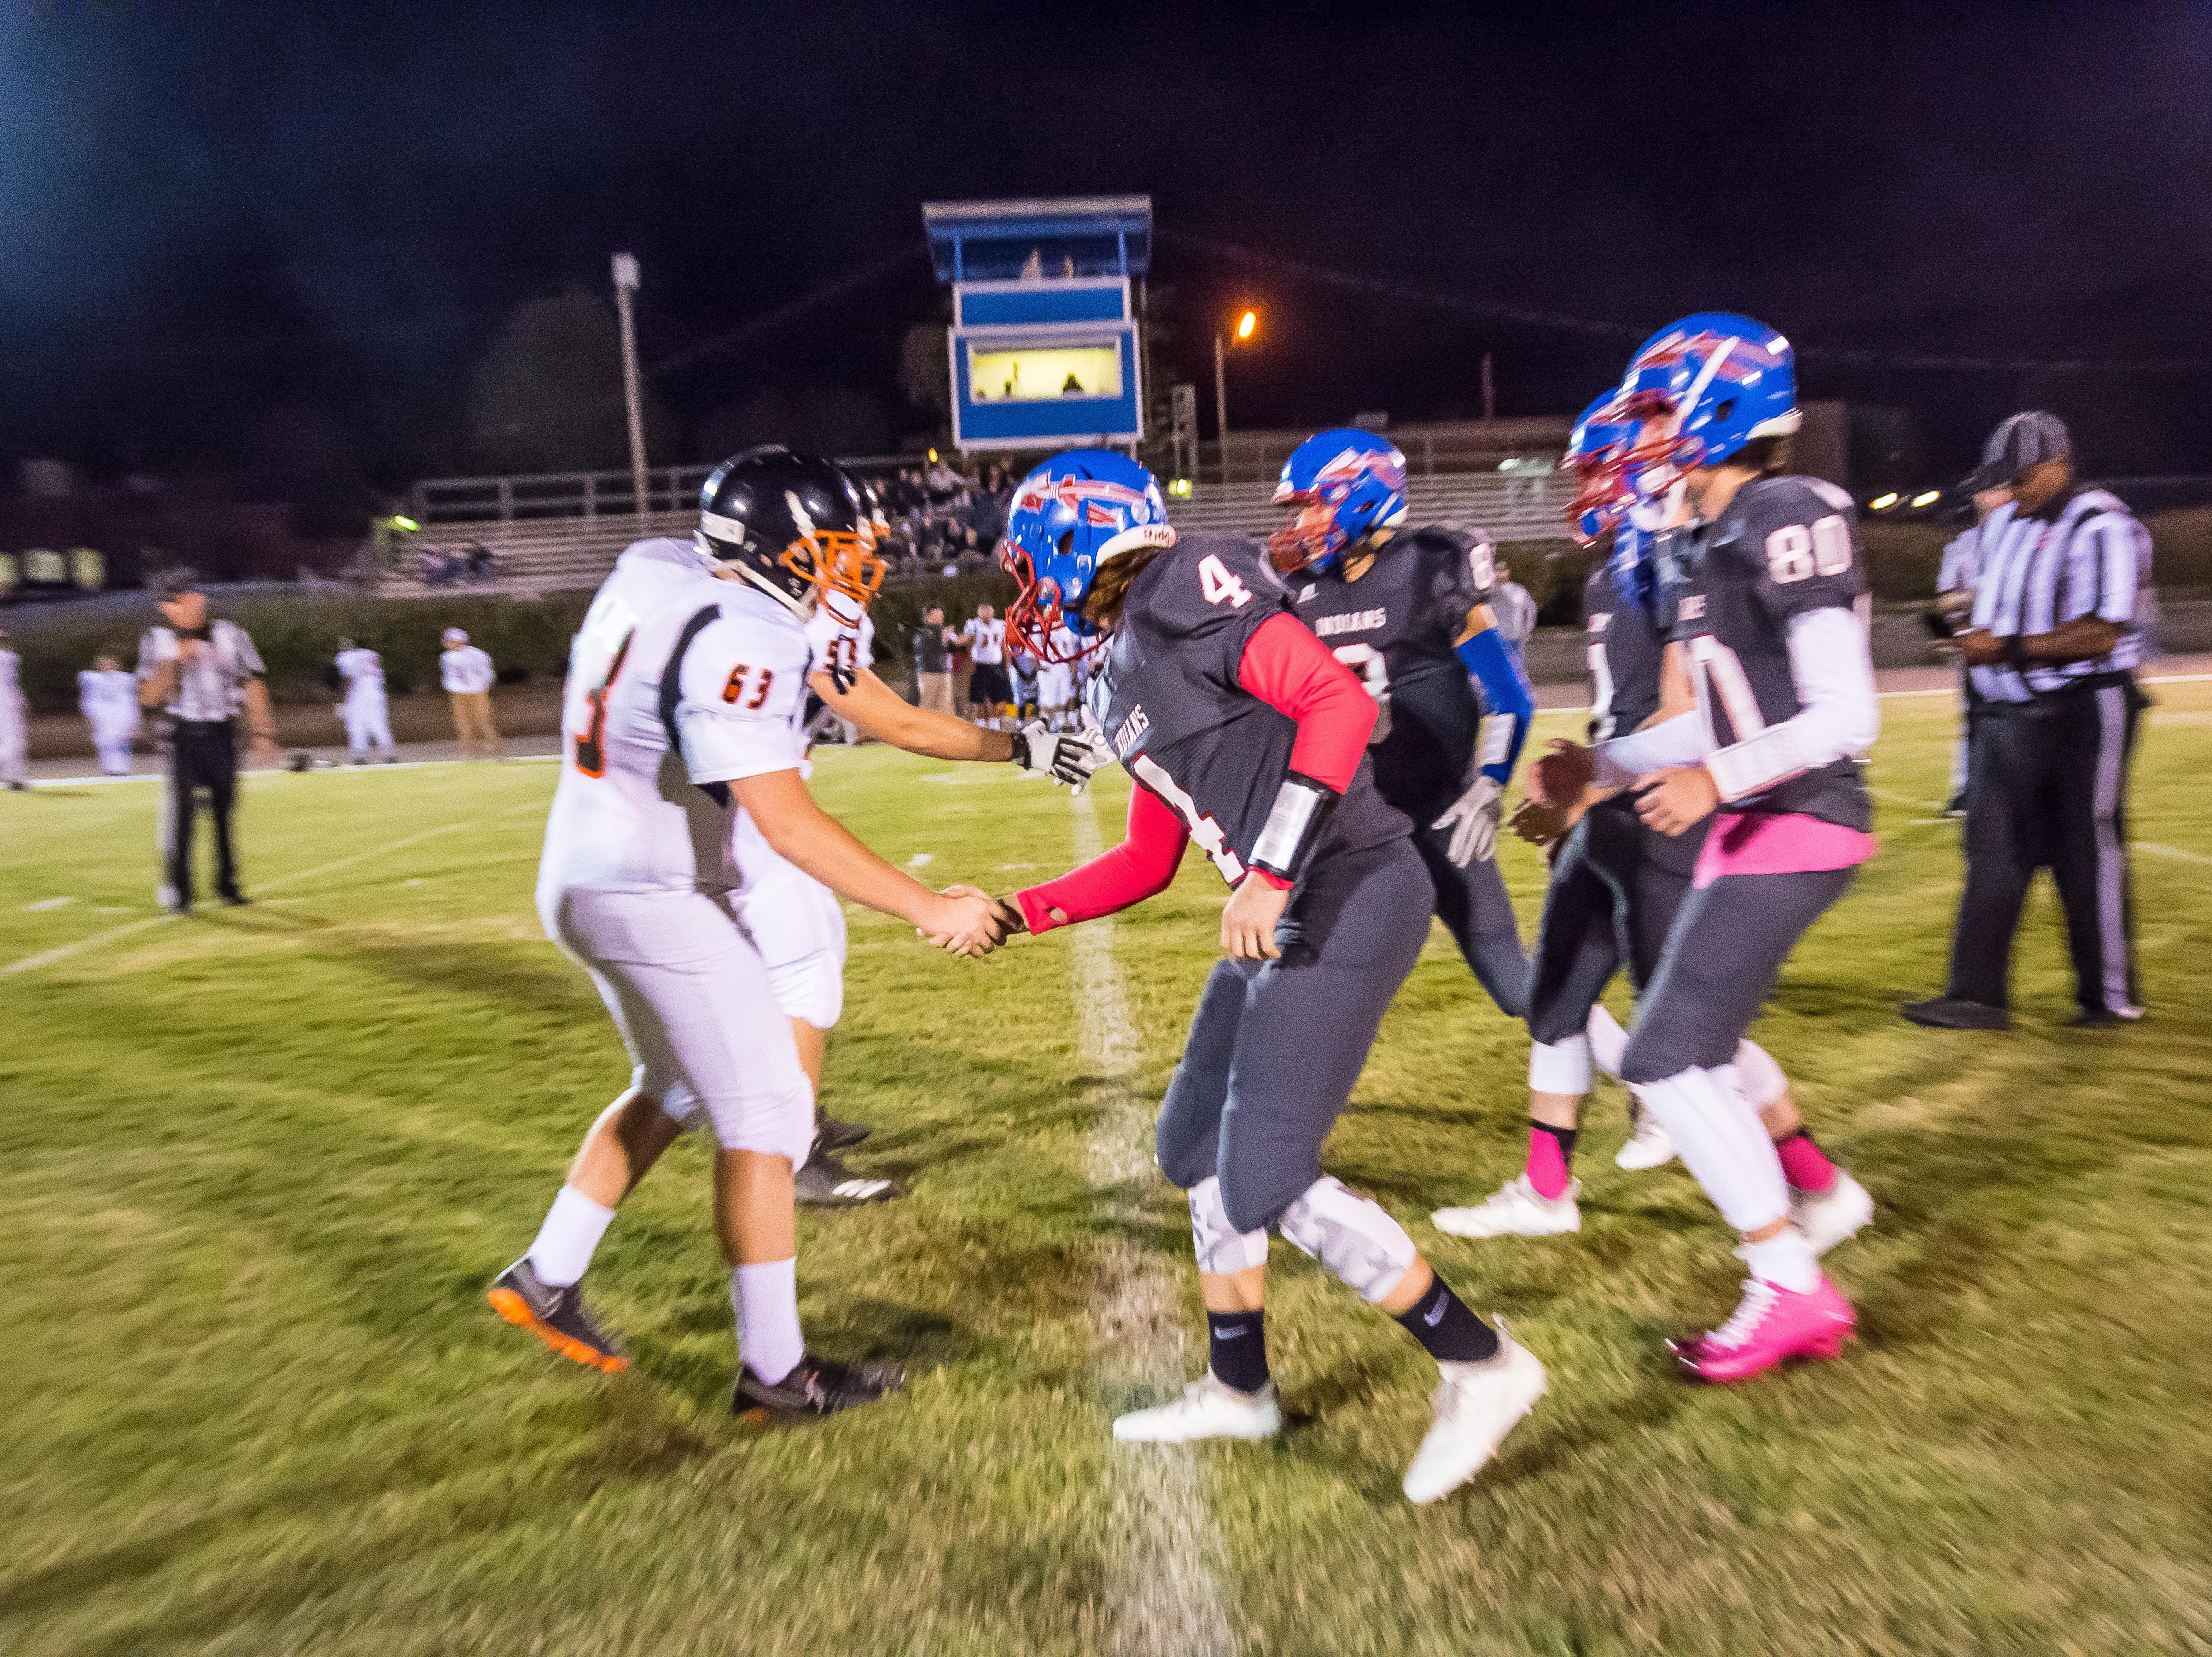 Fayetteville captains (left) and Harpeth captains shake hands before their game.